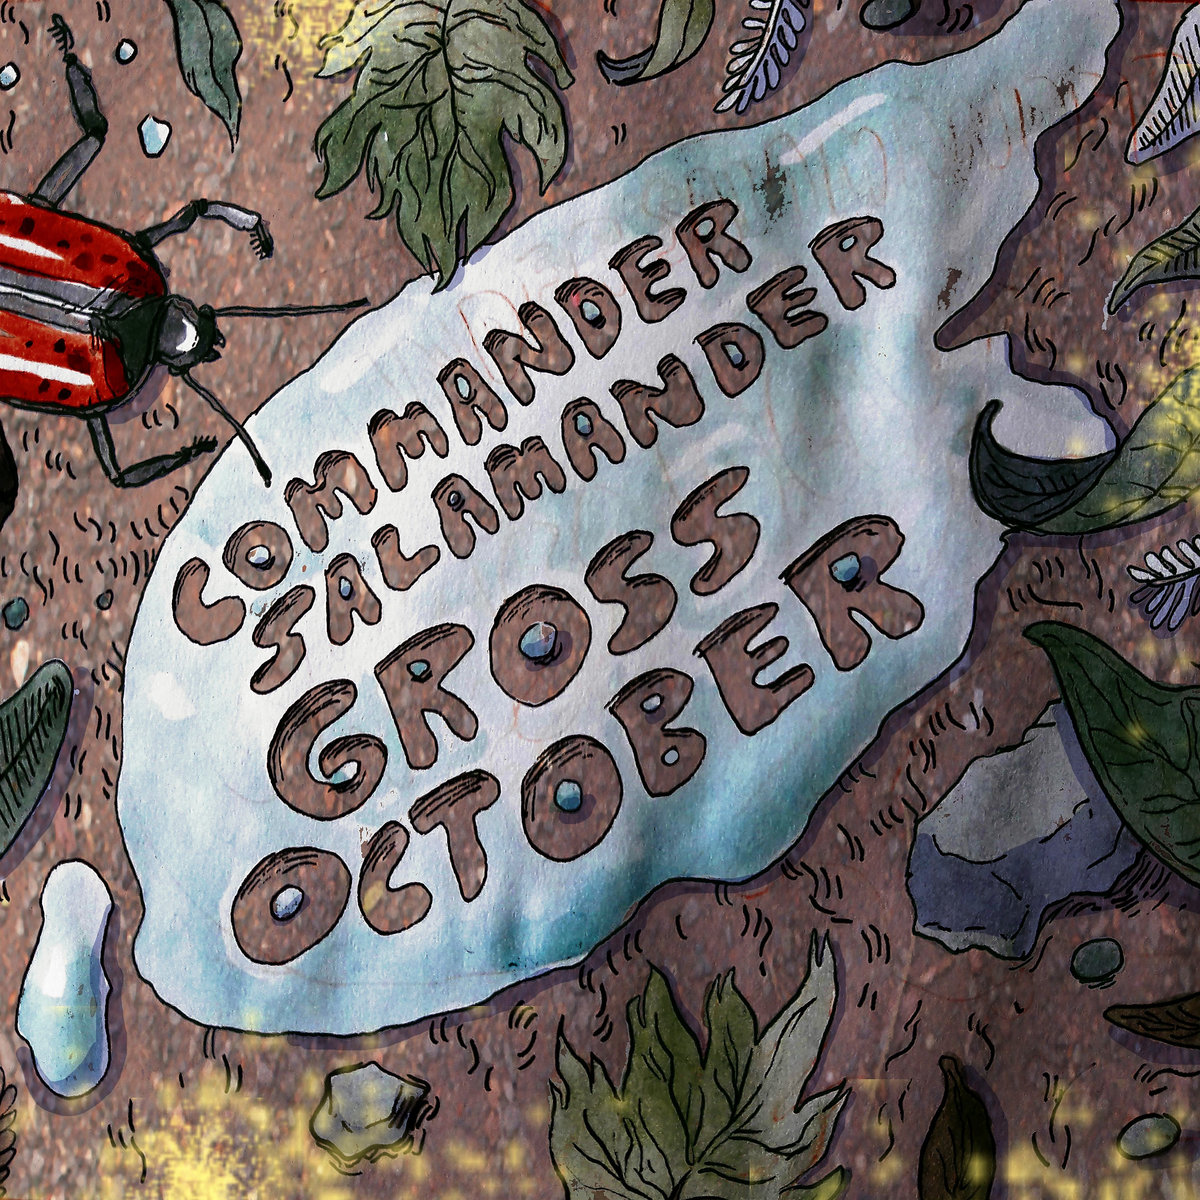 Commander Salamander - Gross October